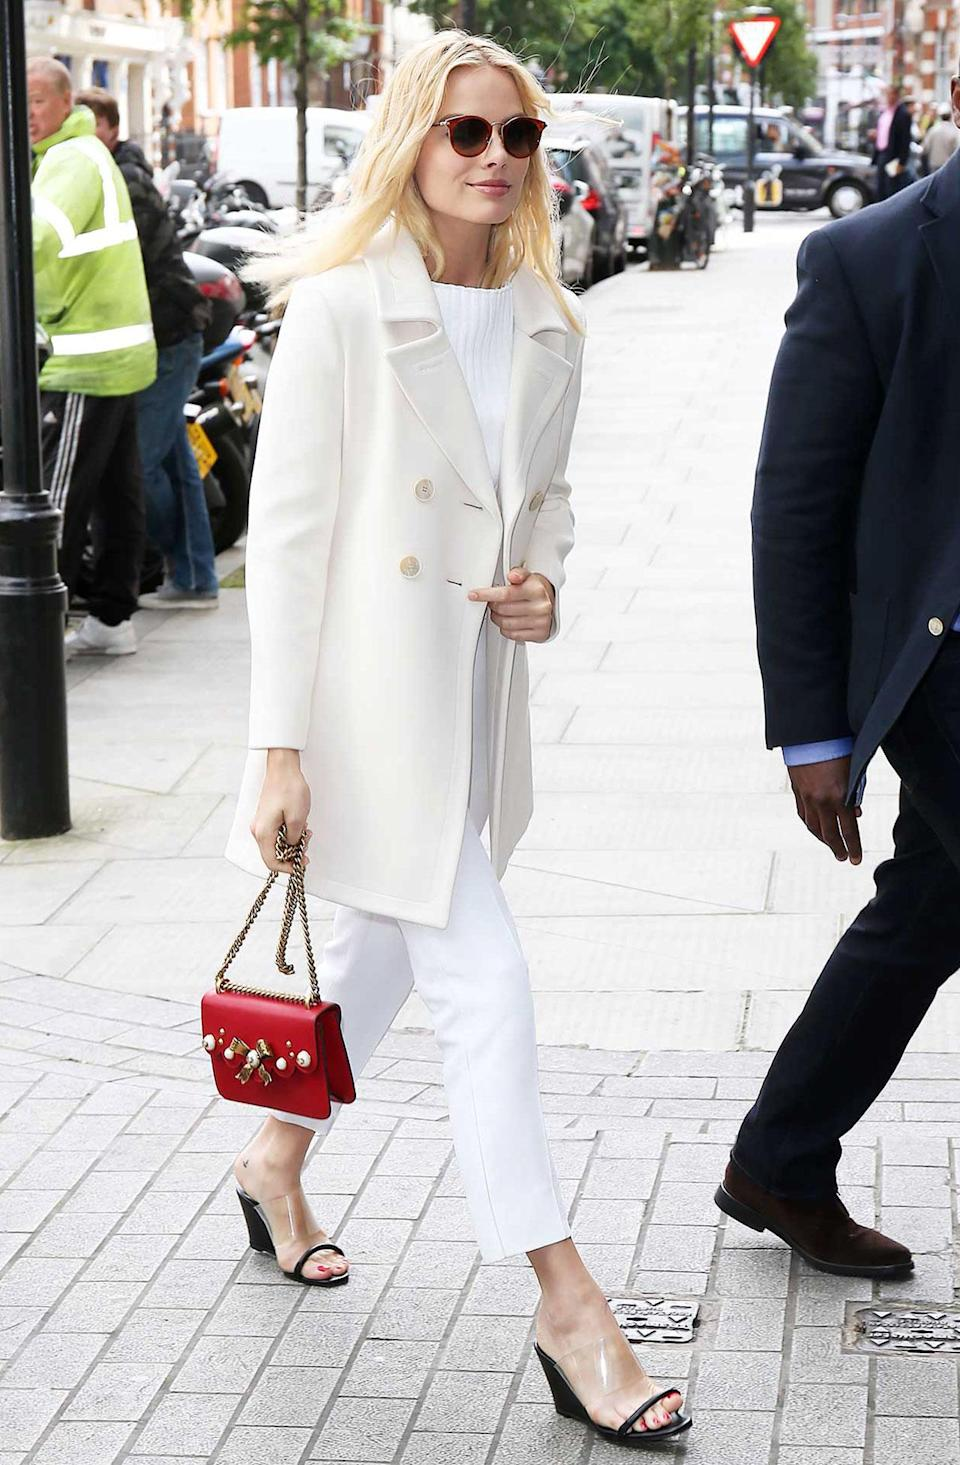 <h2>In Calvin Klein, Gucci And Maryam Nassir Zadeh Shoes</h2> <p>In London, 2016</p> <h4>Getty Images</h4>